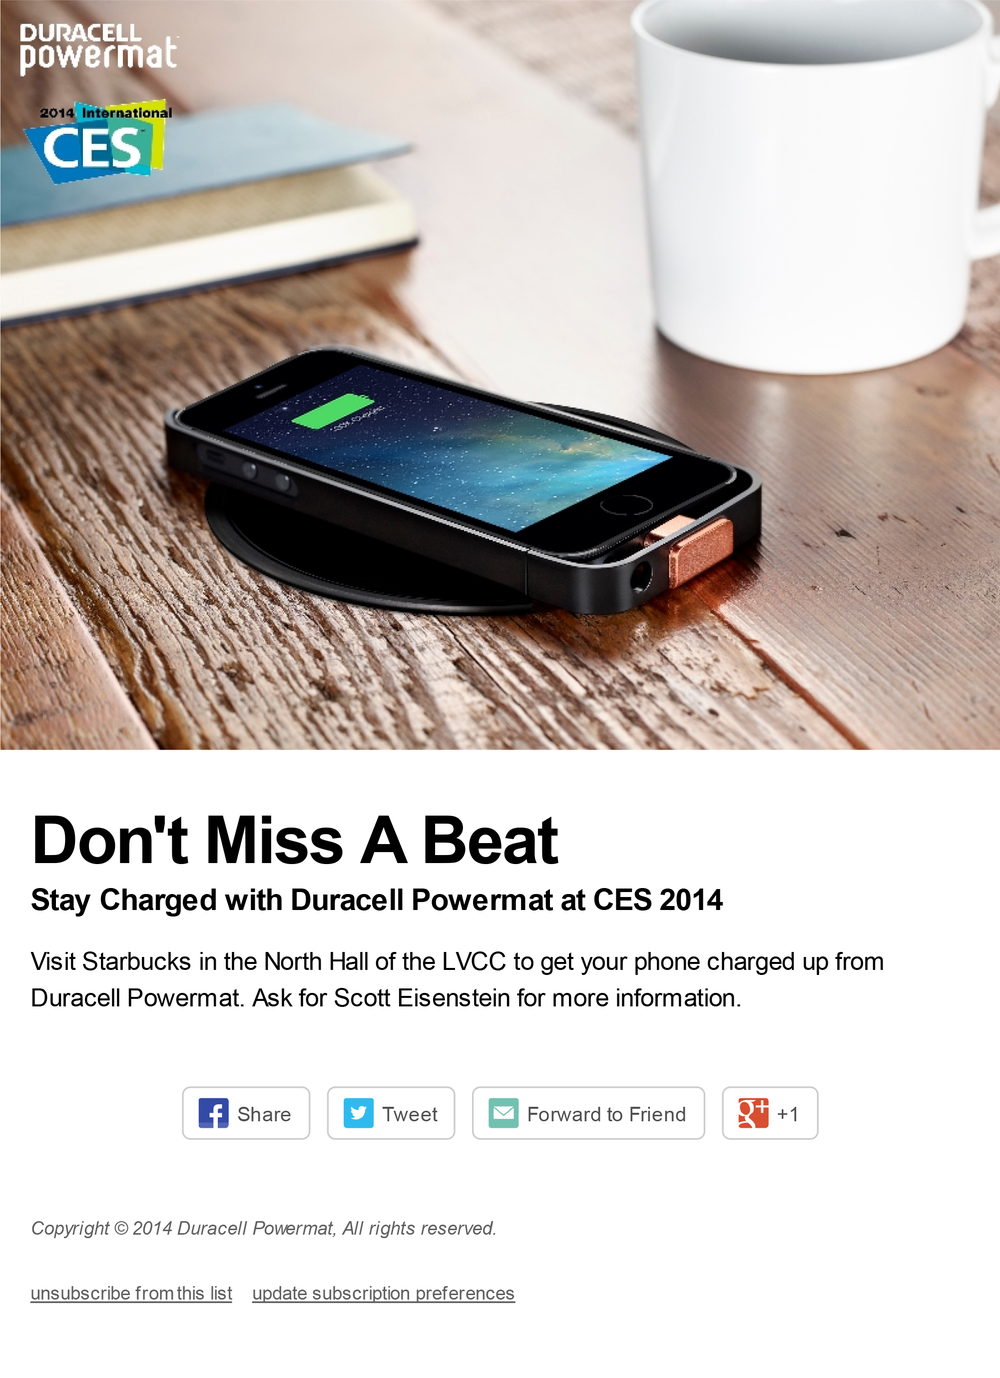 CES 2014 Wireless Charging at LVCC Starbucks from Duracell Powermat-1.png